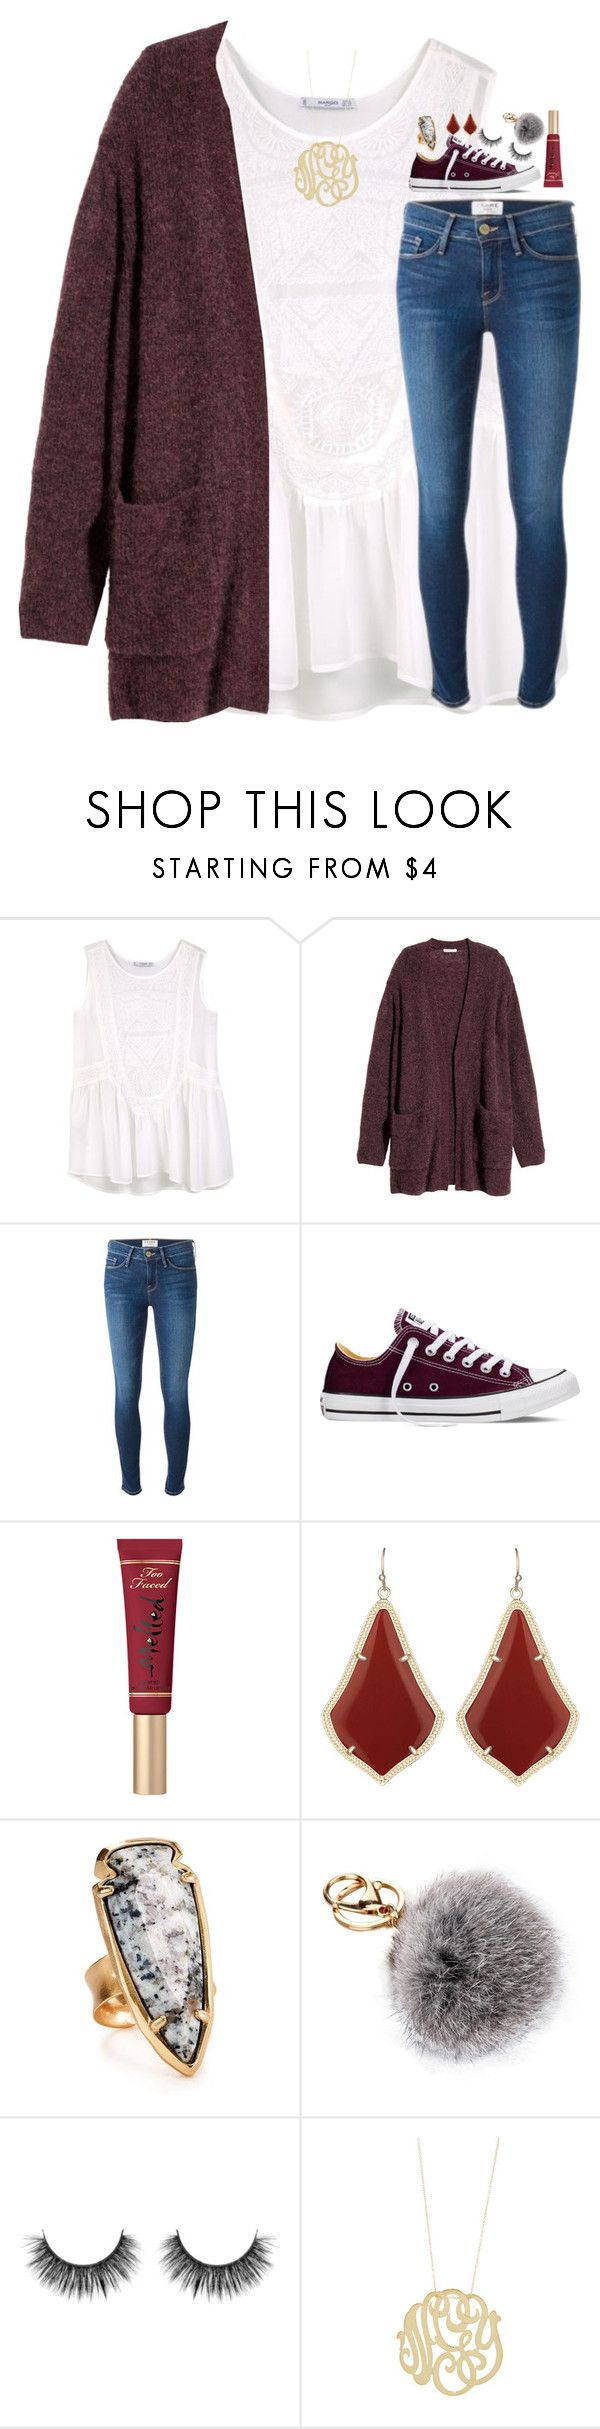 """""""santa is real and no one questions"""" by lindsaygreys ❤ liked on Polyvore featuring MANGO, H&M, Frame, Converse, Too Faced Cosmetics, Kendra Scott and Ginette NY"""